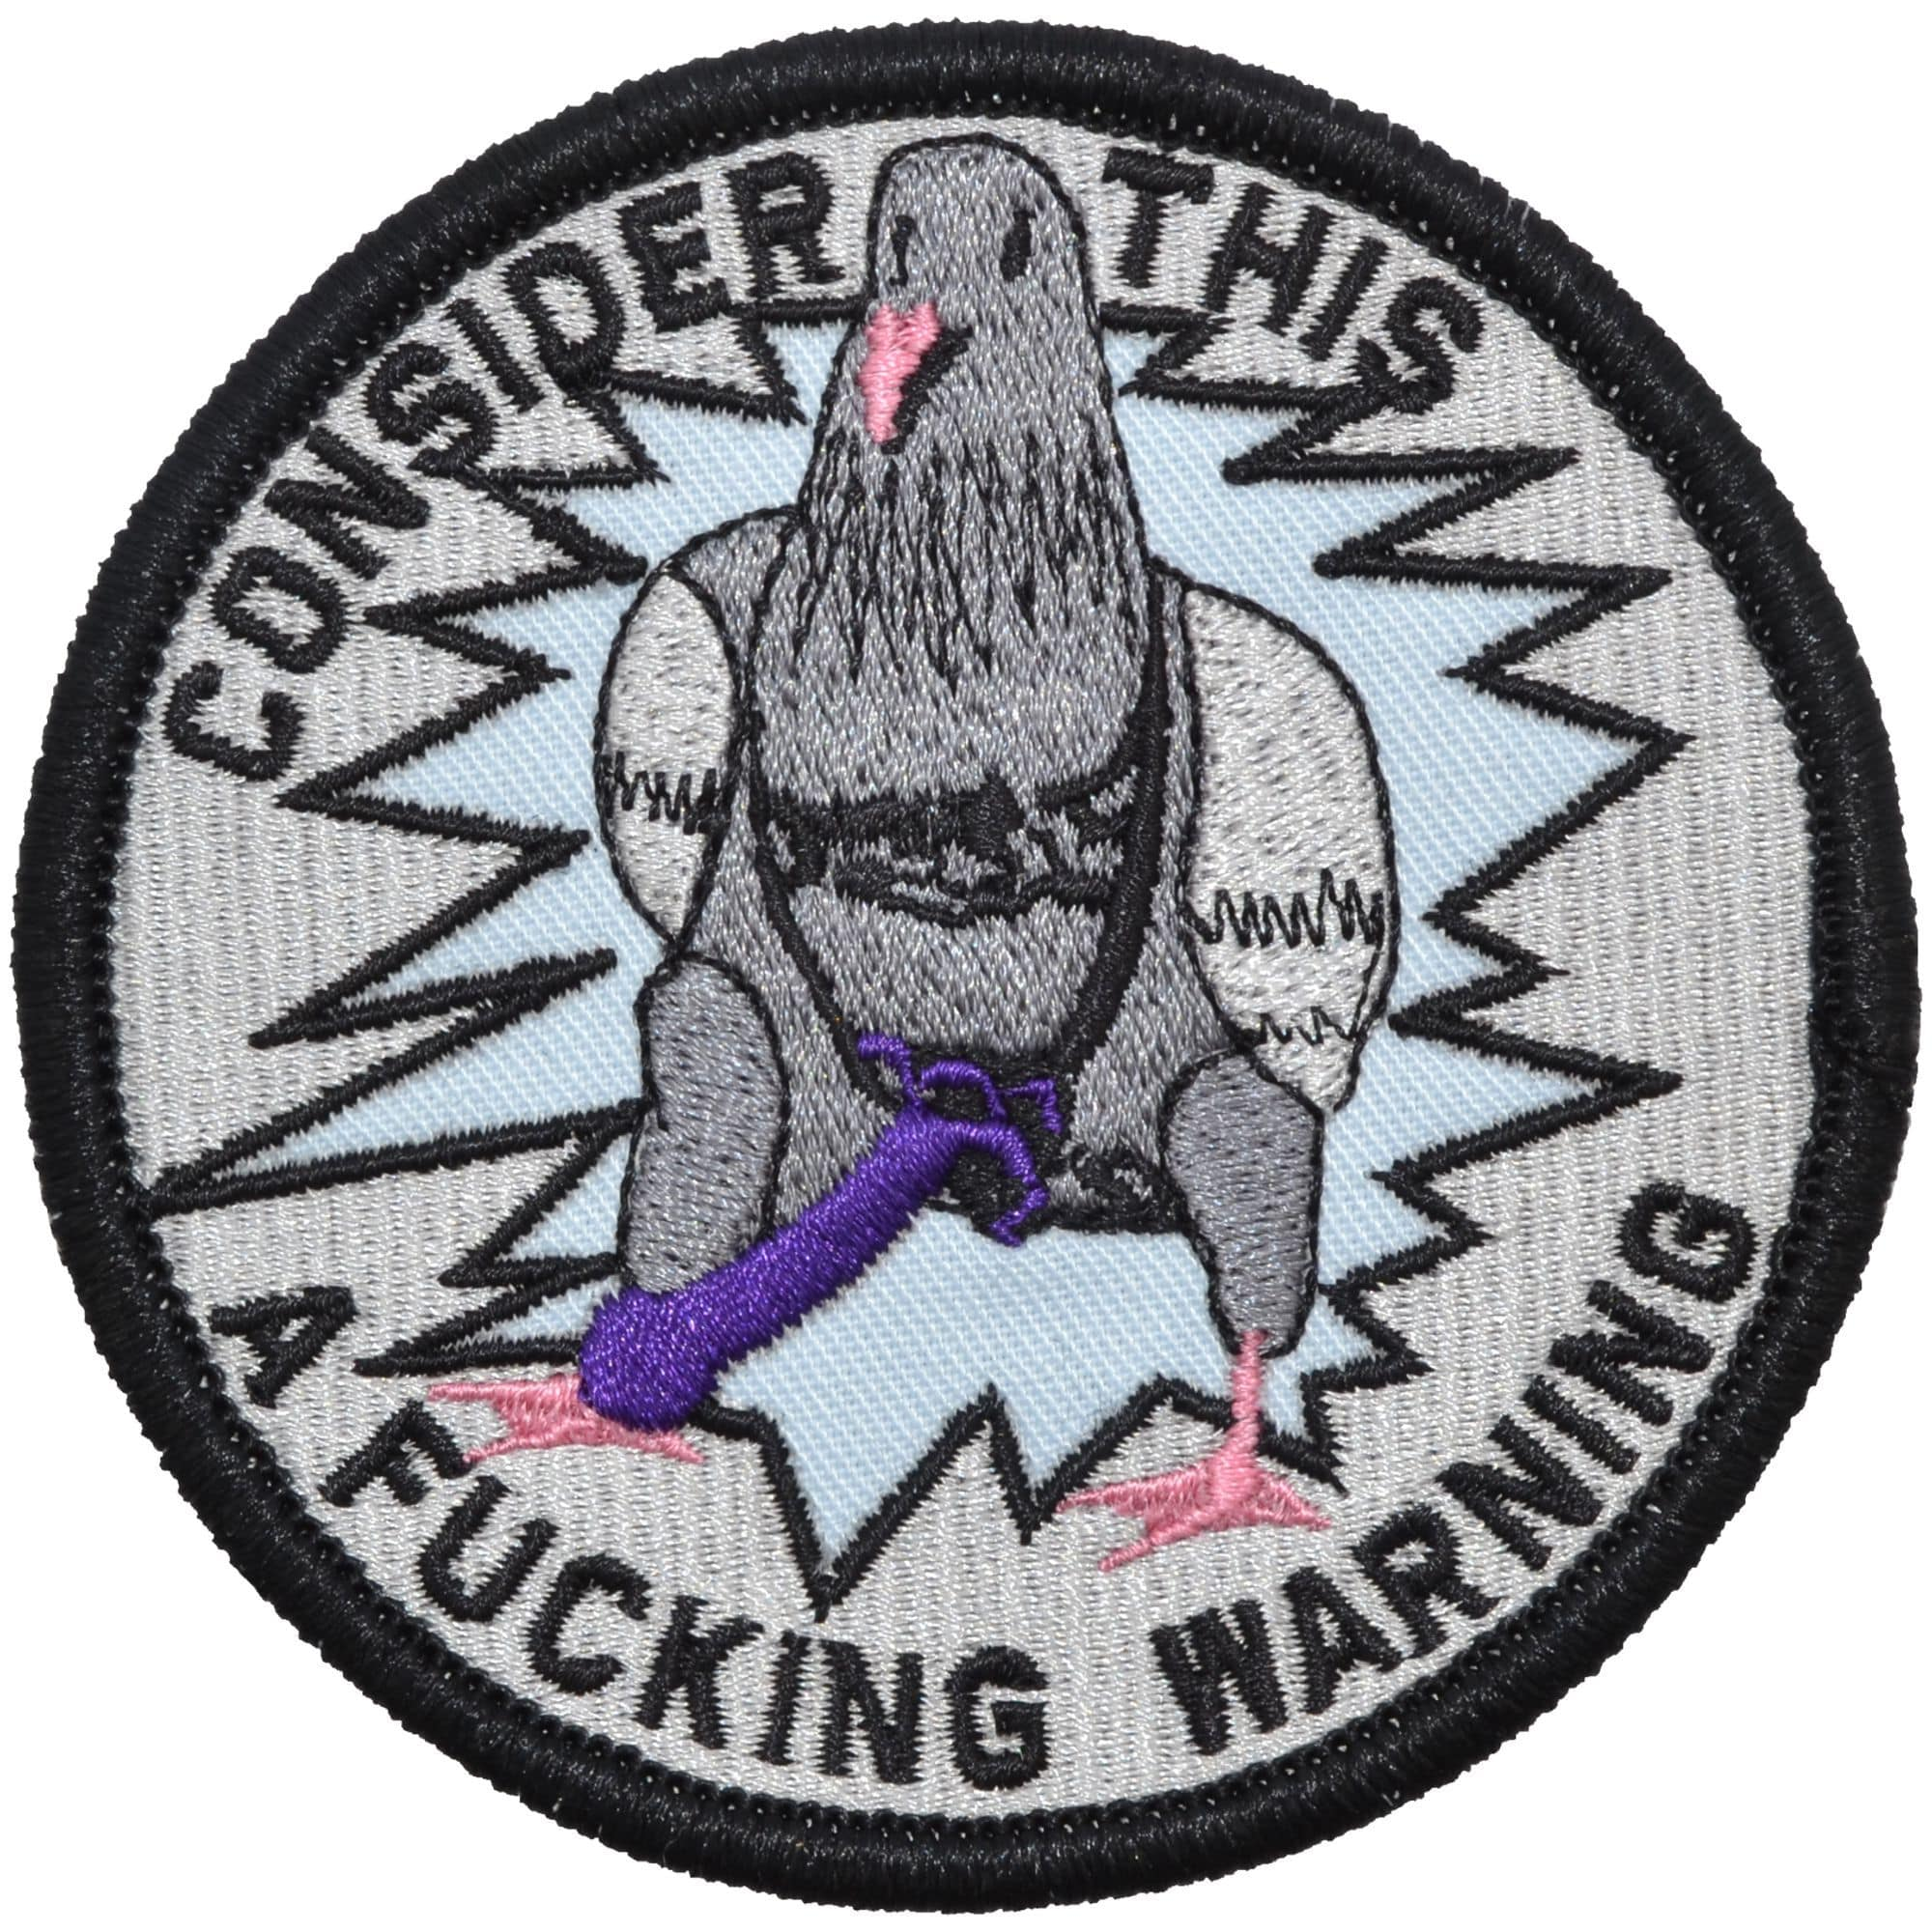 Tactical Gear Junkie Patches Consider This A Fucking Warning Pigeon - 3.5 inch Round Patch